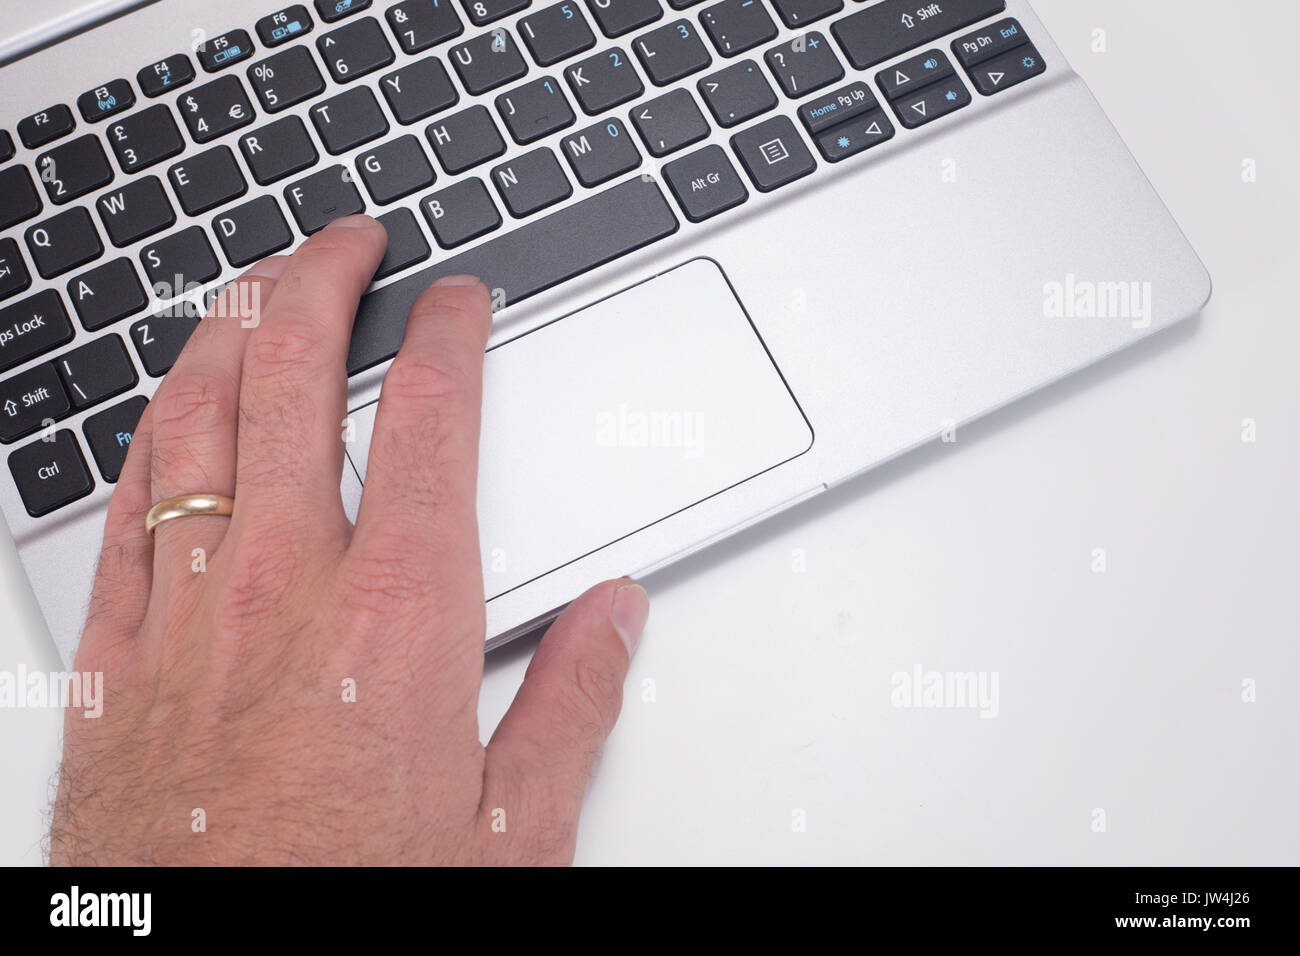 A mans hand with wedding ring using and pressing buttons on a laptop computer keyboard with white copy space. - Stock Image